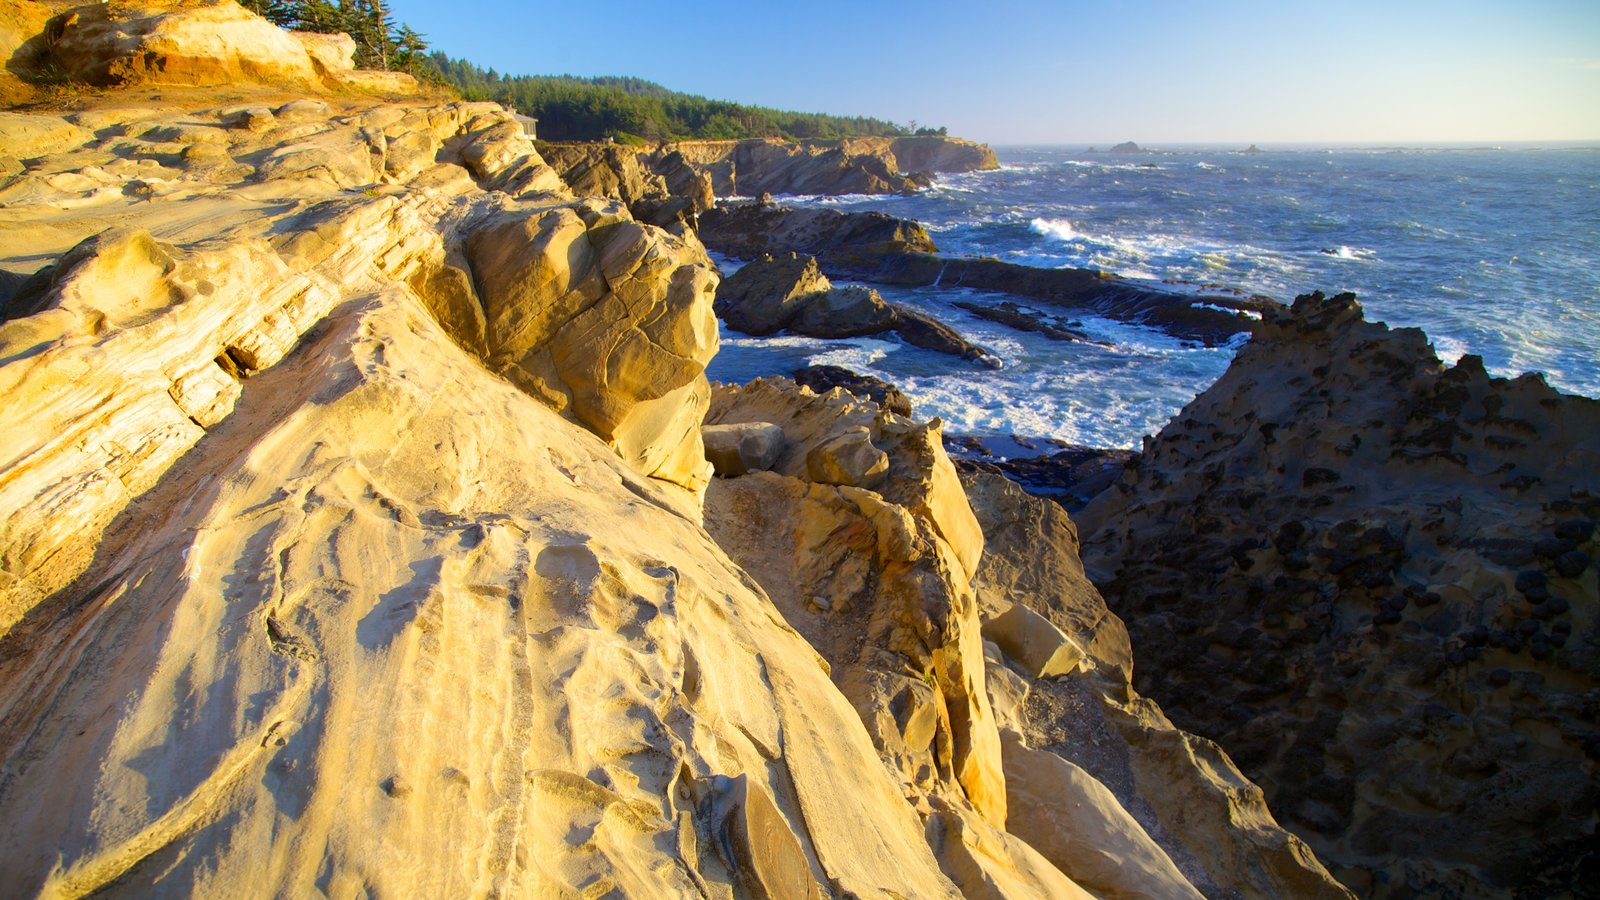 Shore Acres State Park showing rocky coastline